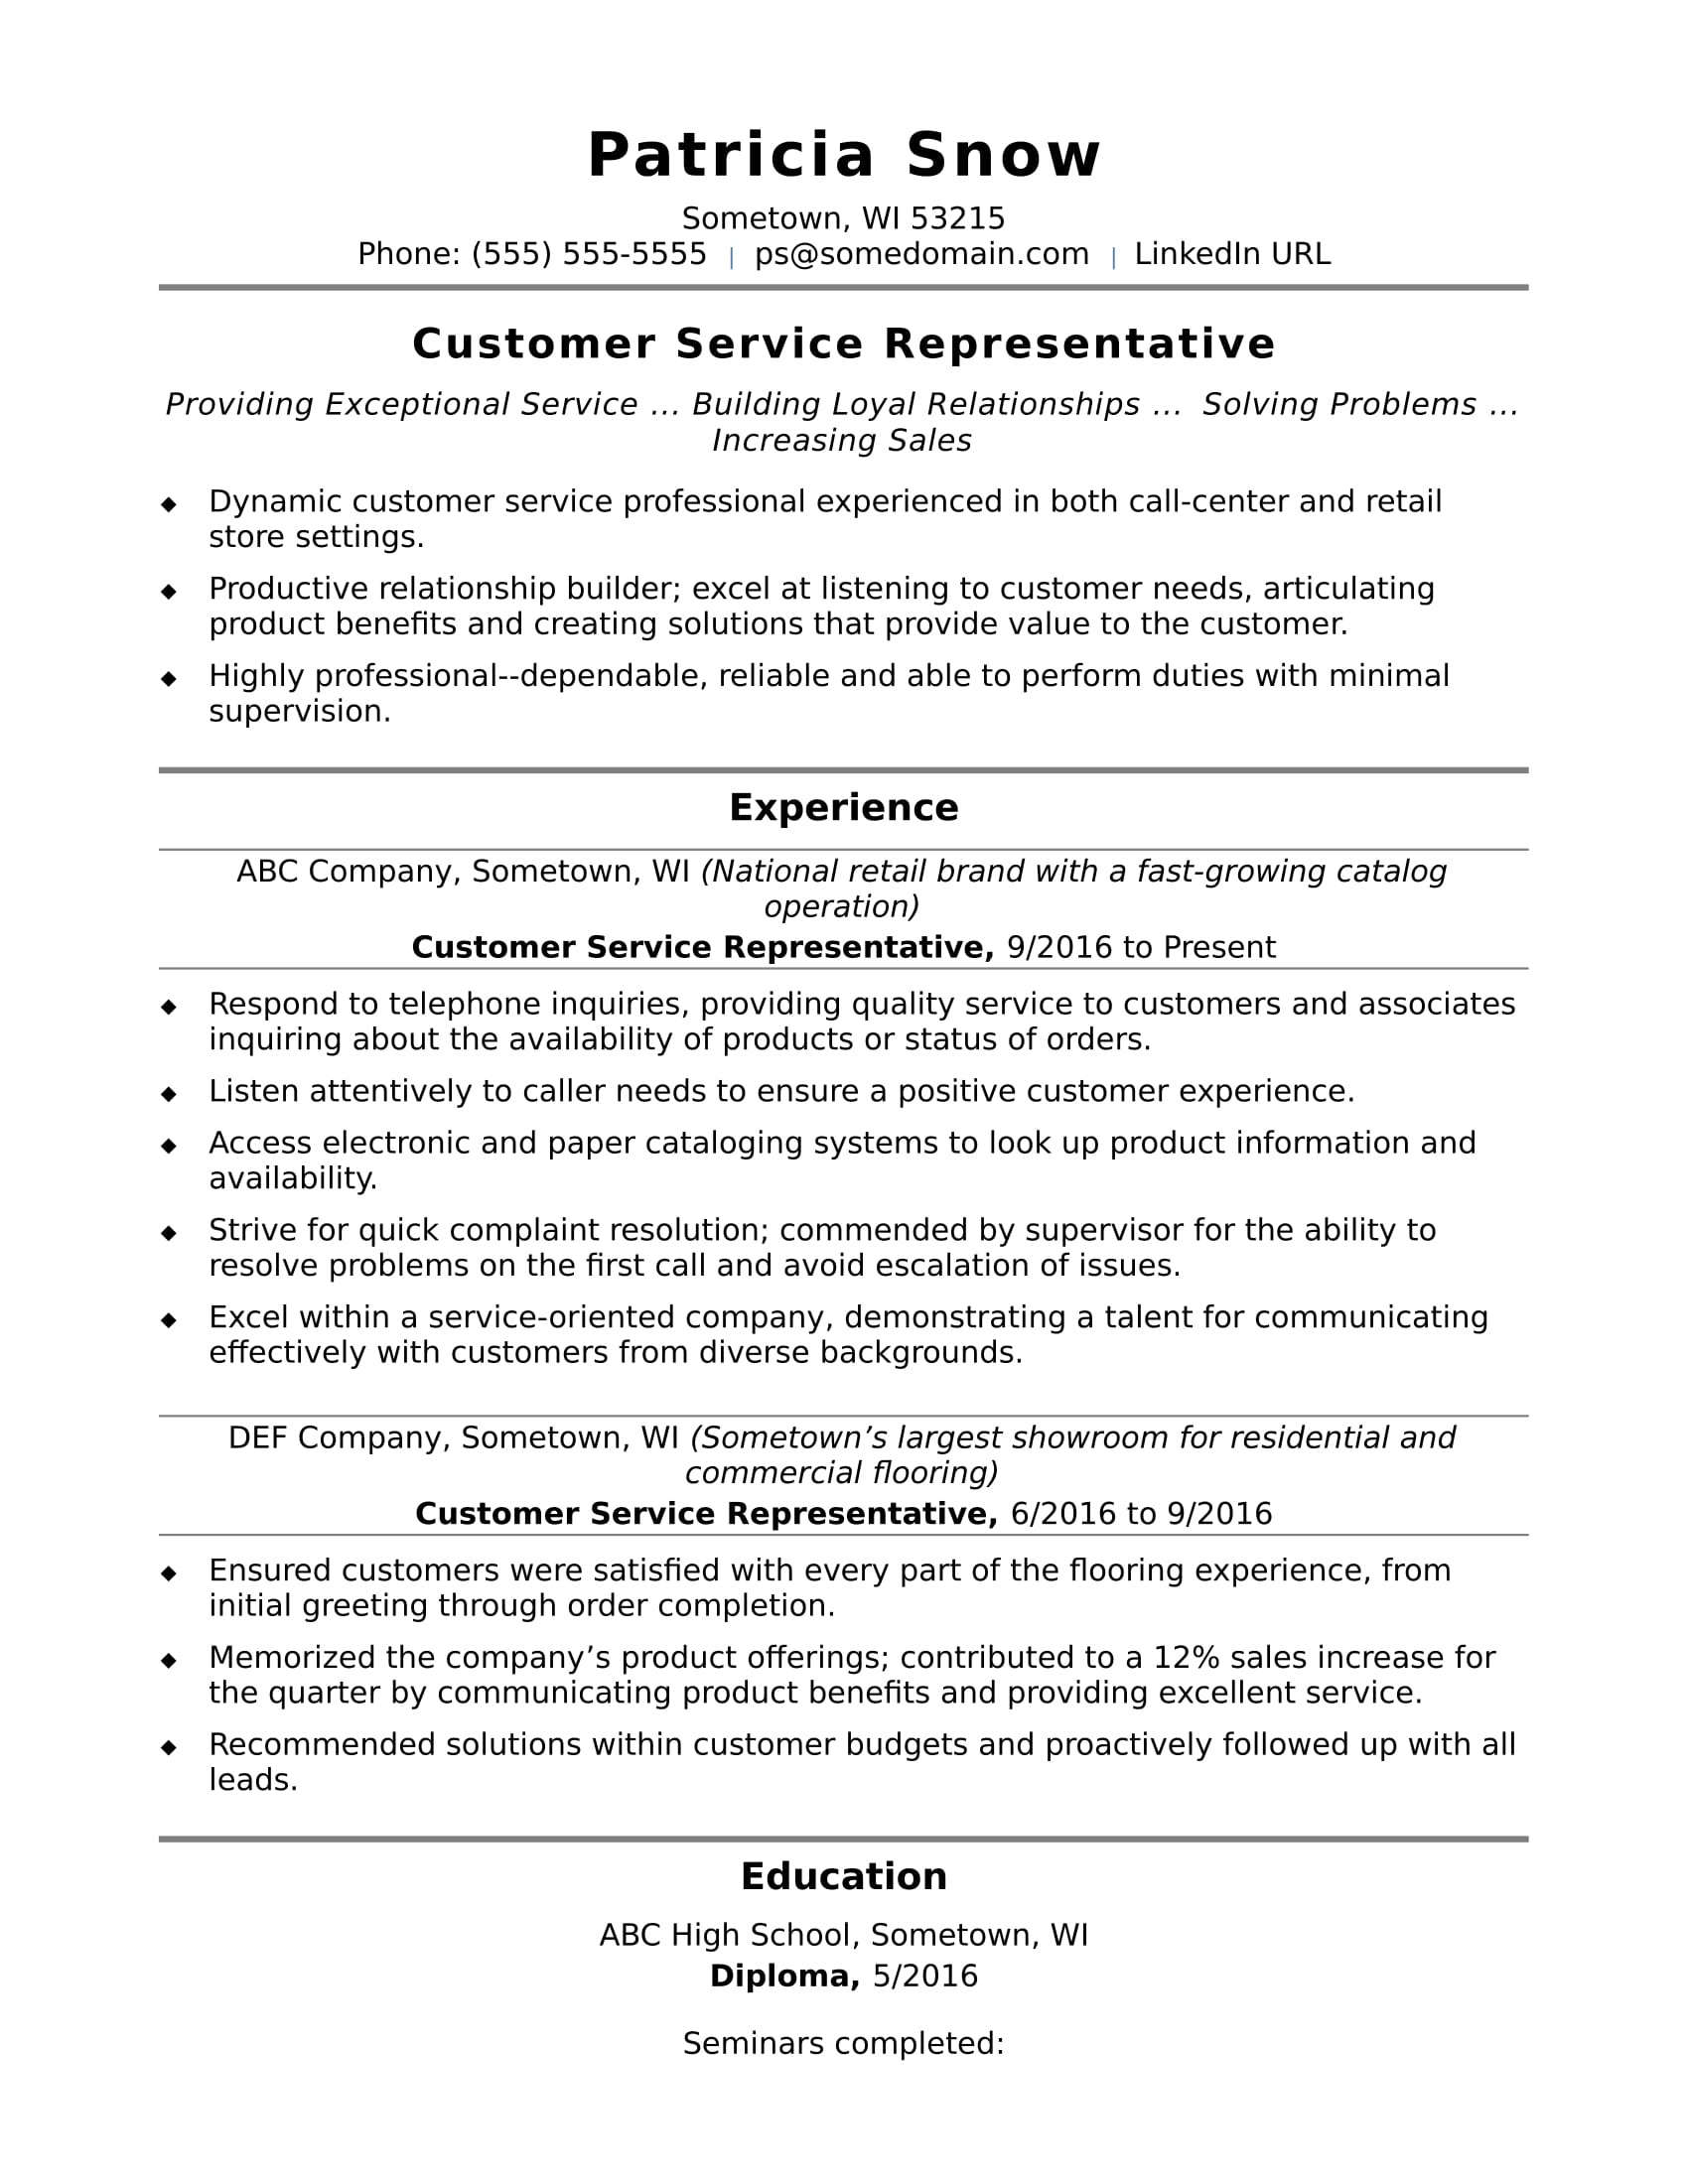 customer service representative resume sample customer service representative resume sample 1492